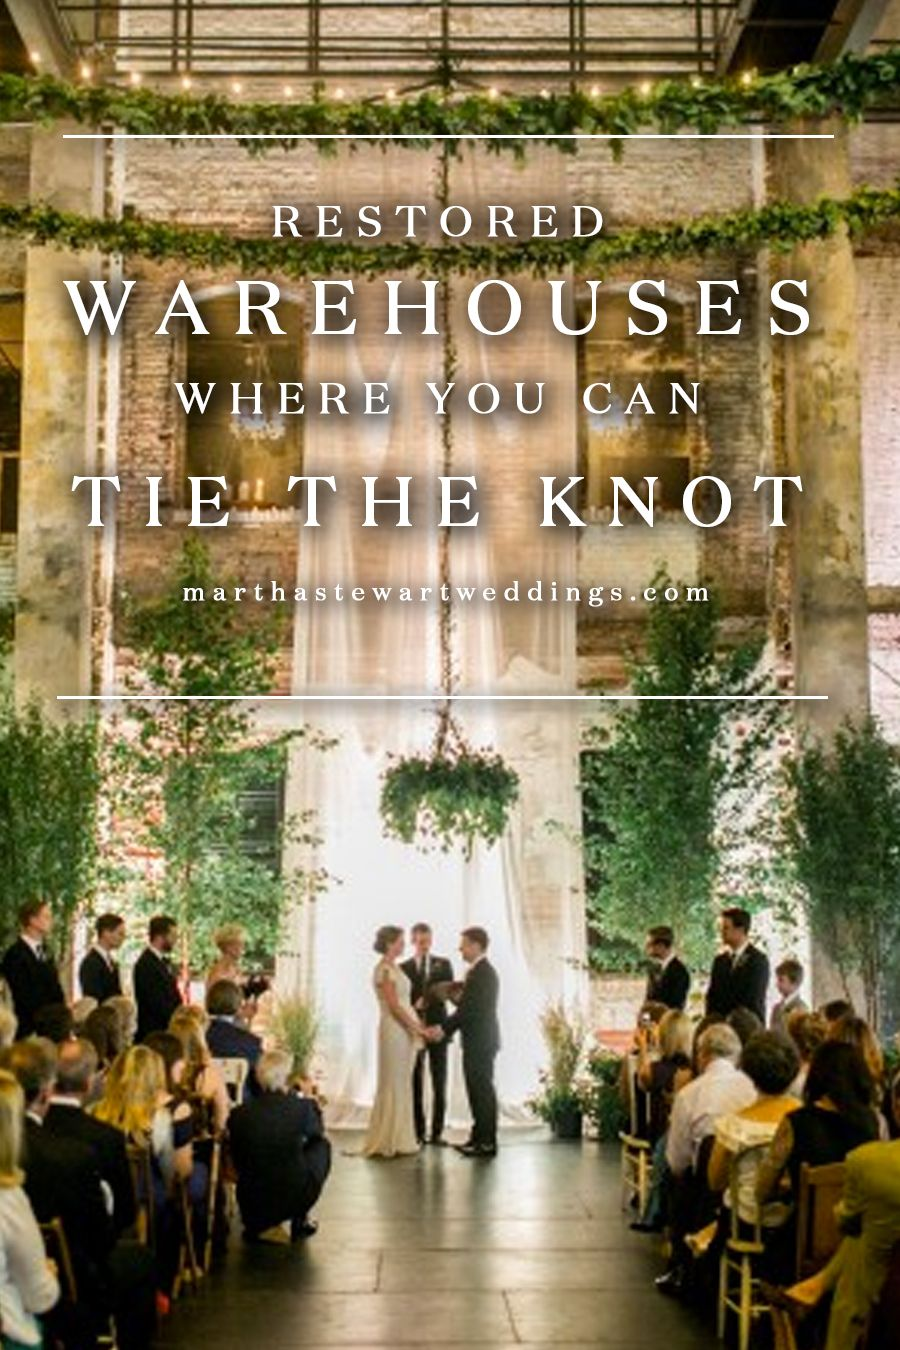 Restored Warehouses Where You Can Tie The Knot Warehouse Wedding Wedding Advice Budget Wedding